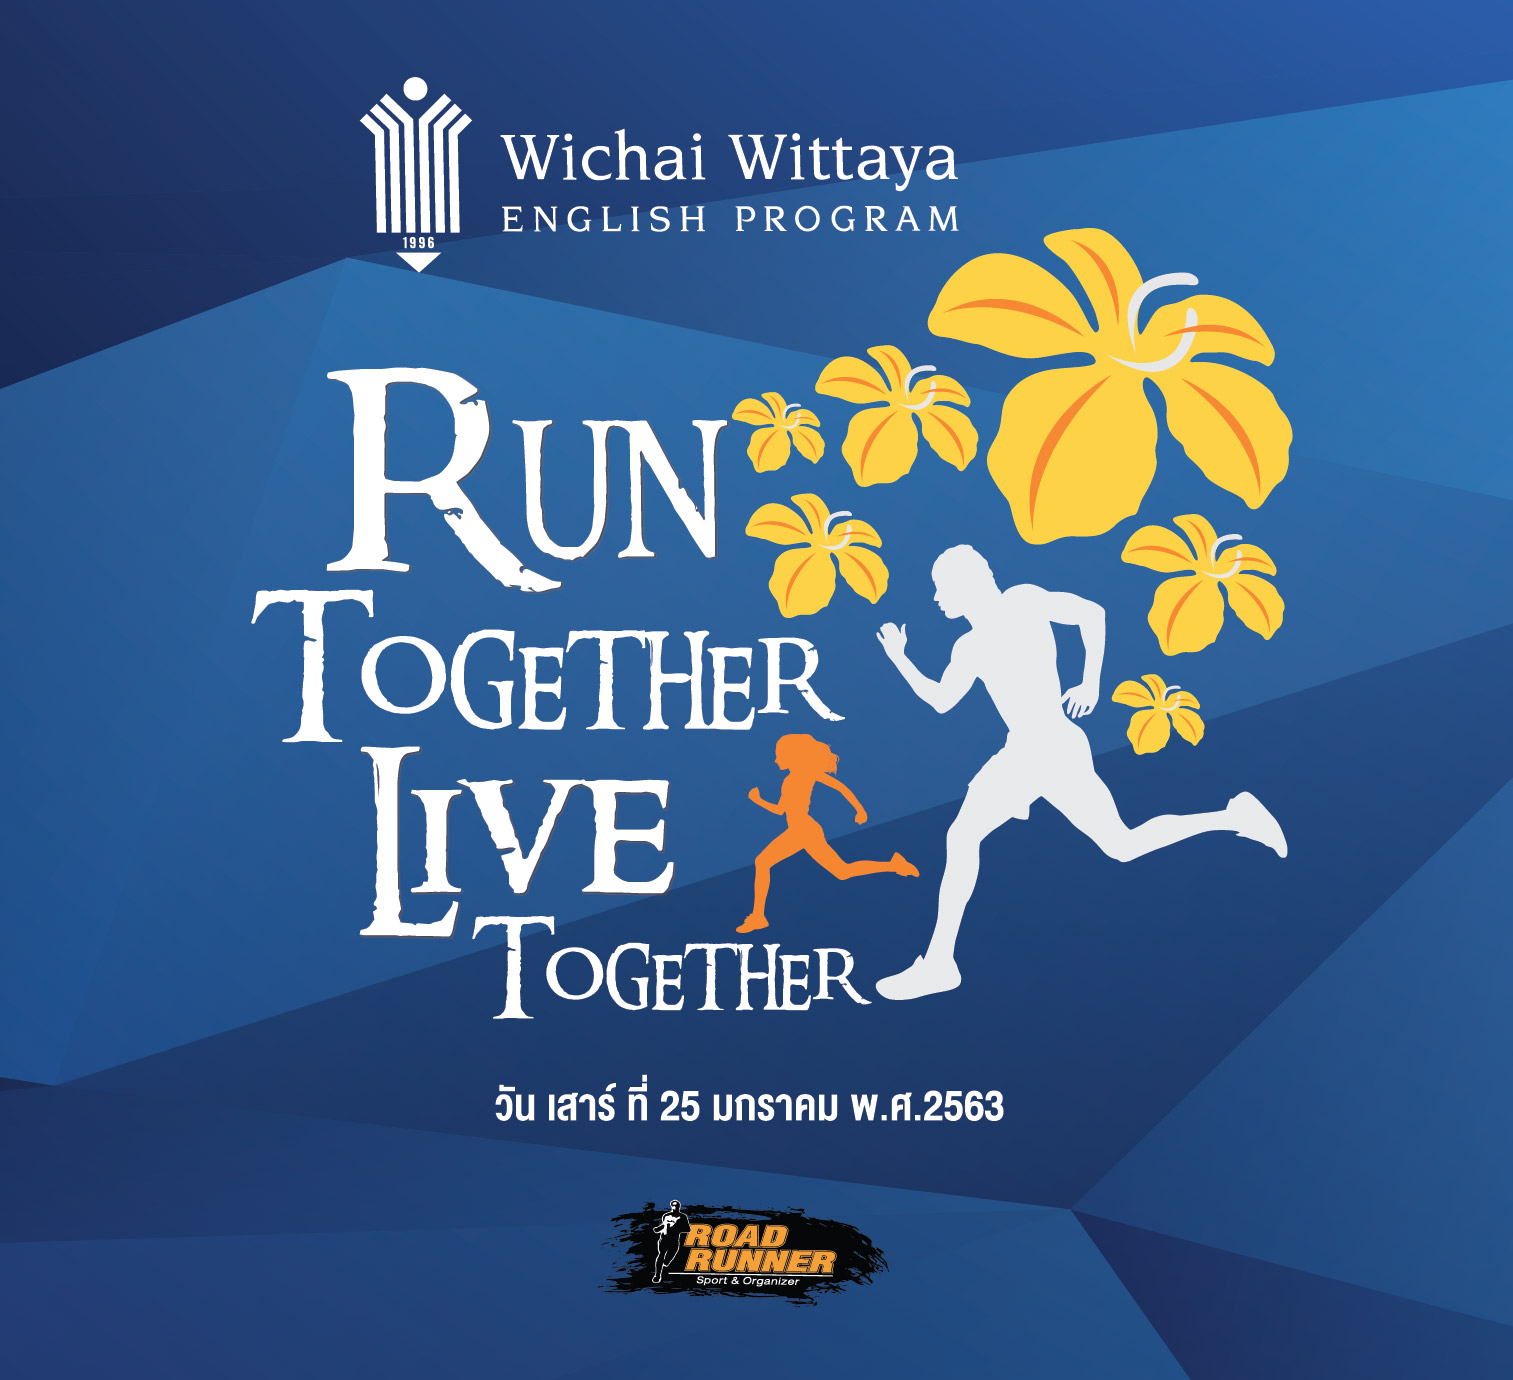 Wichai Wittaya Run Together Live Together 2020